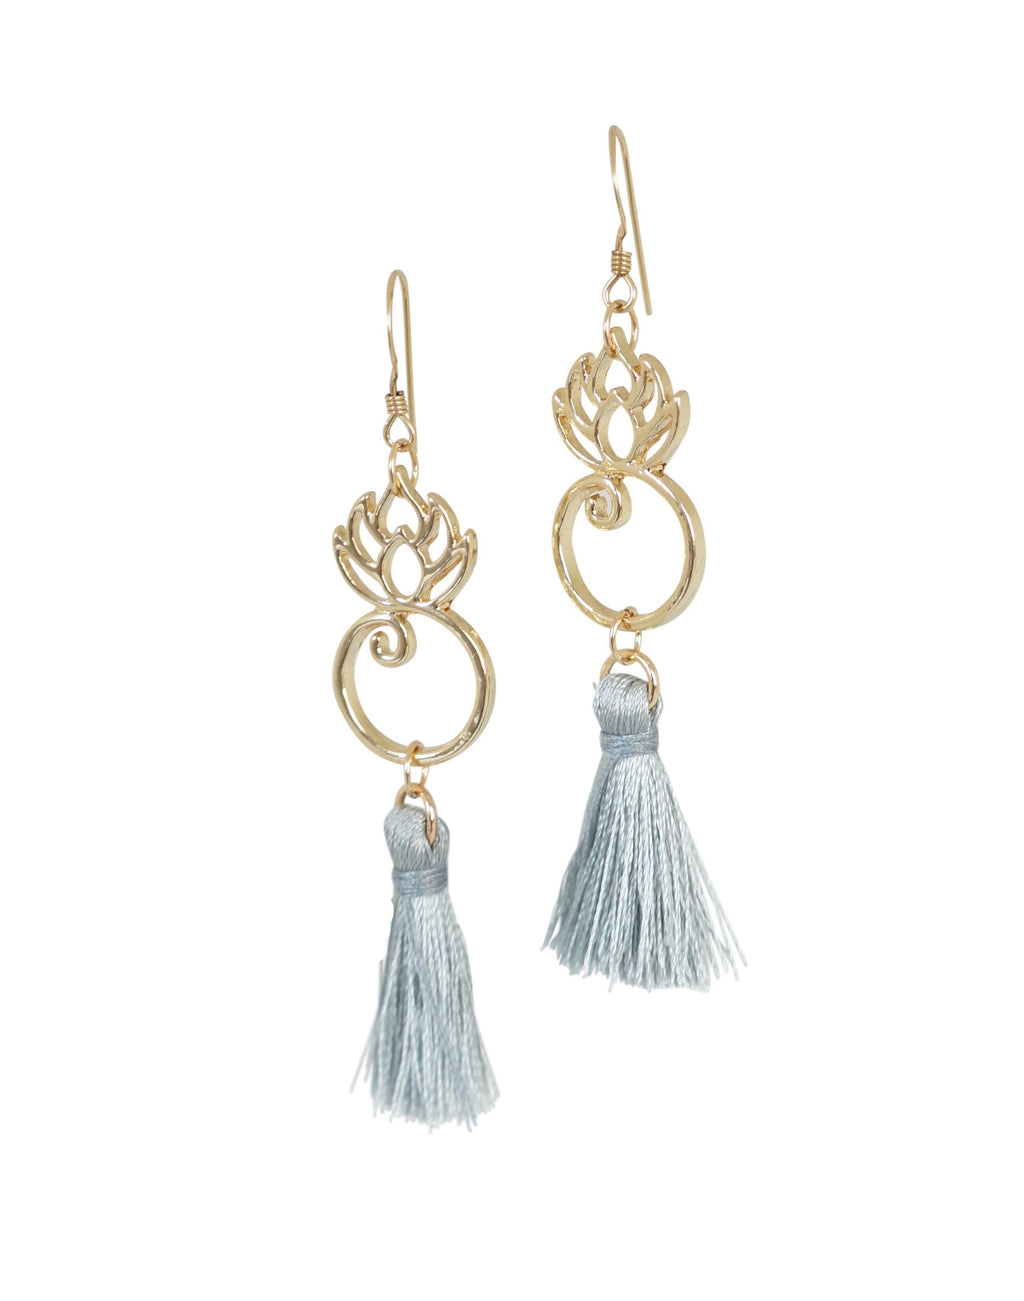 Lotus Tassel Earrings - Carolyn Hearn Designs